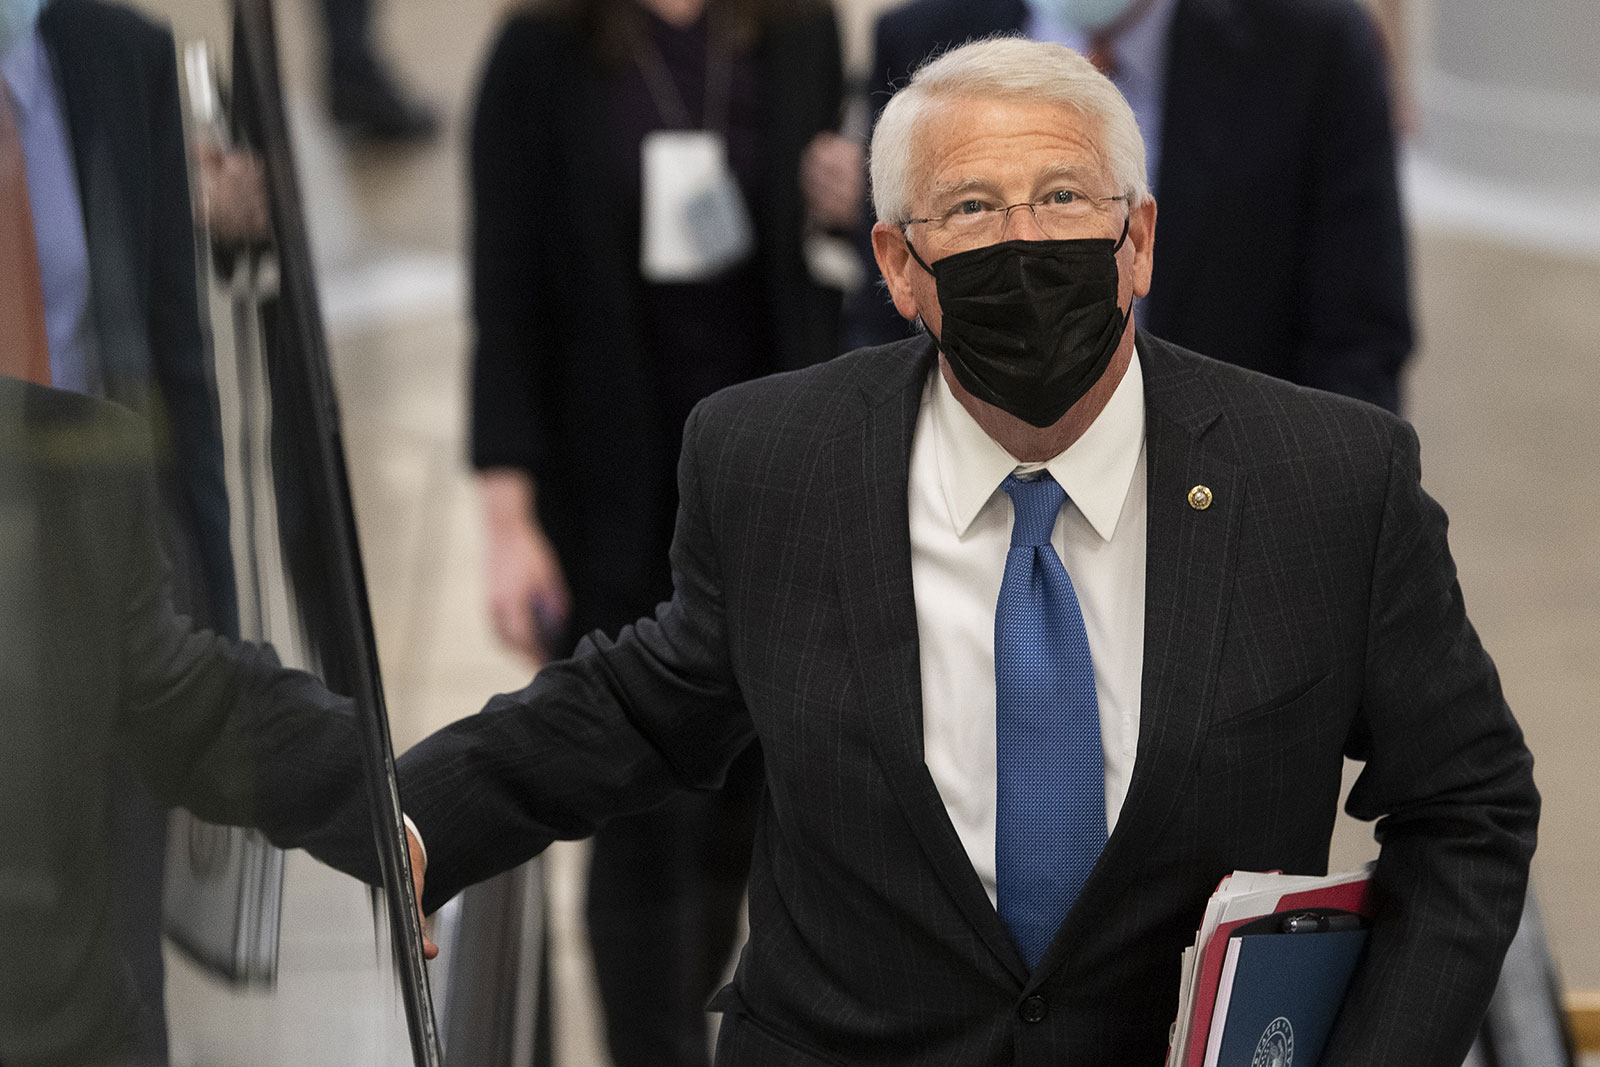 Sen. Roger Wicker walks through the US Capitol on Tuesday.